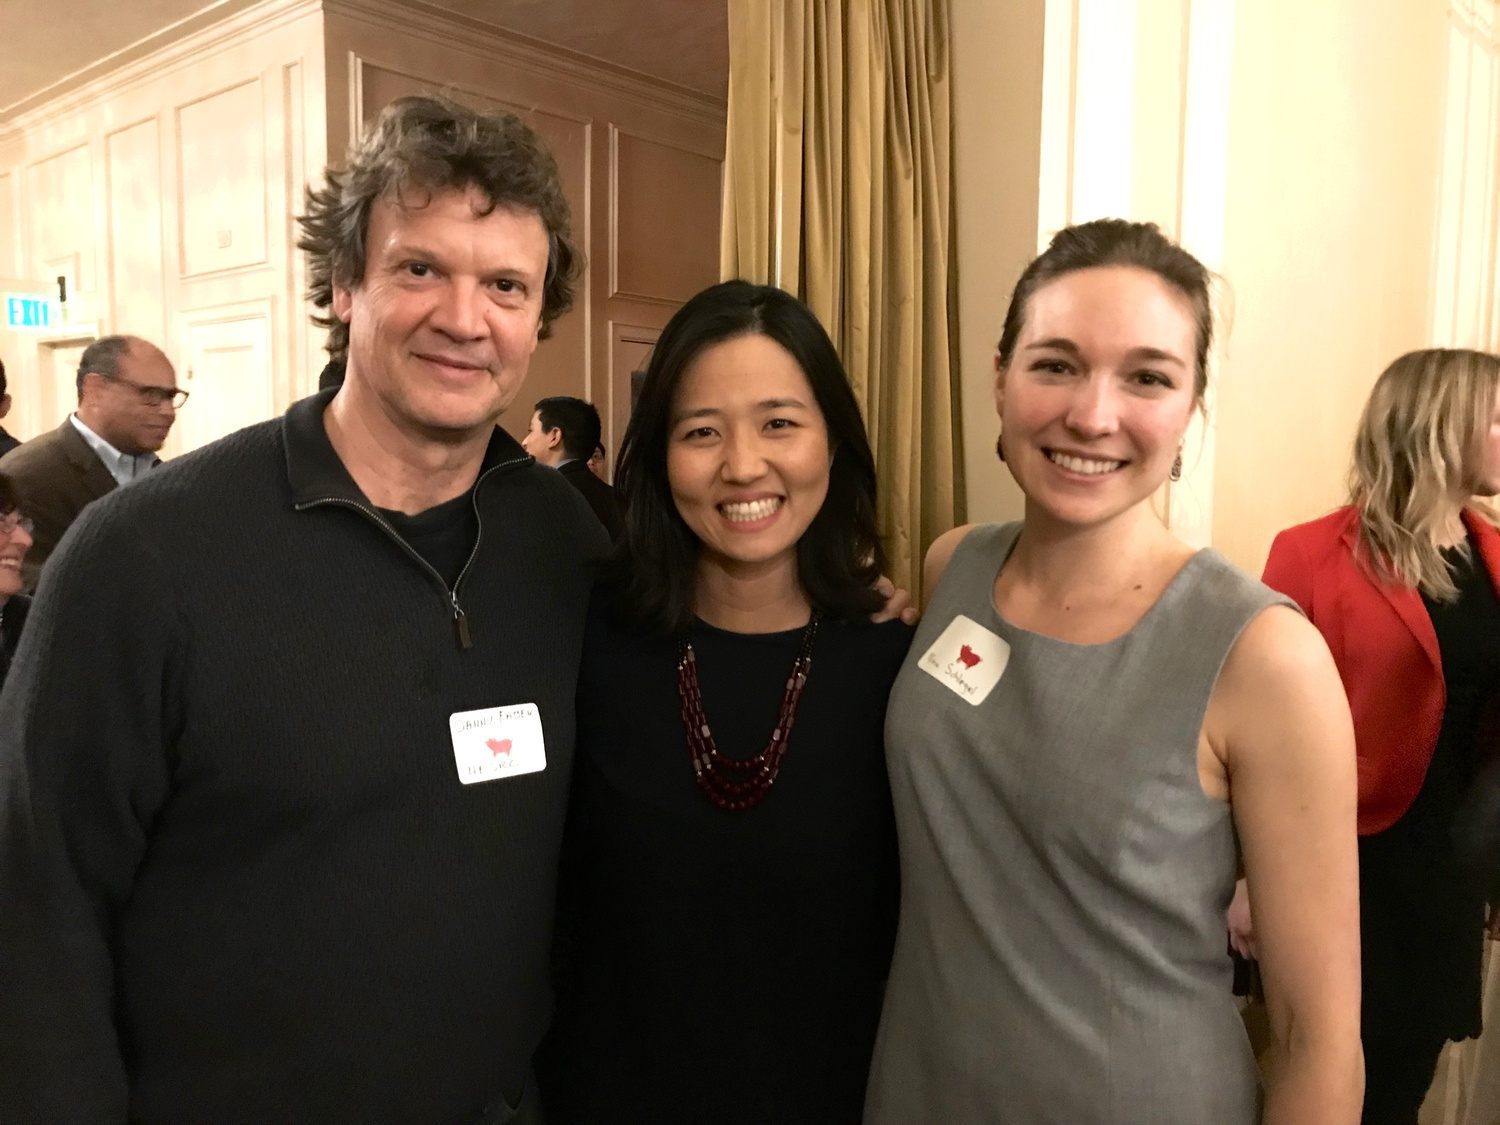 Wu poses with Nina A. Schlegel, the lead author of her Green New Deal policy, pre-pandemic.